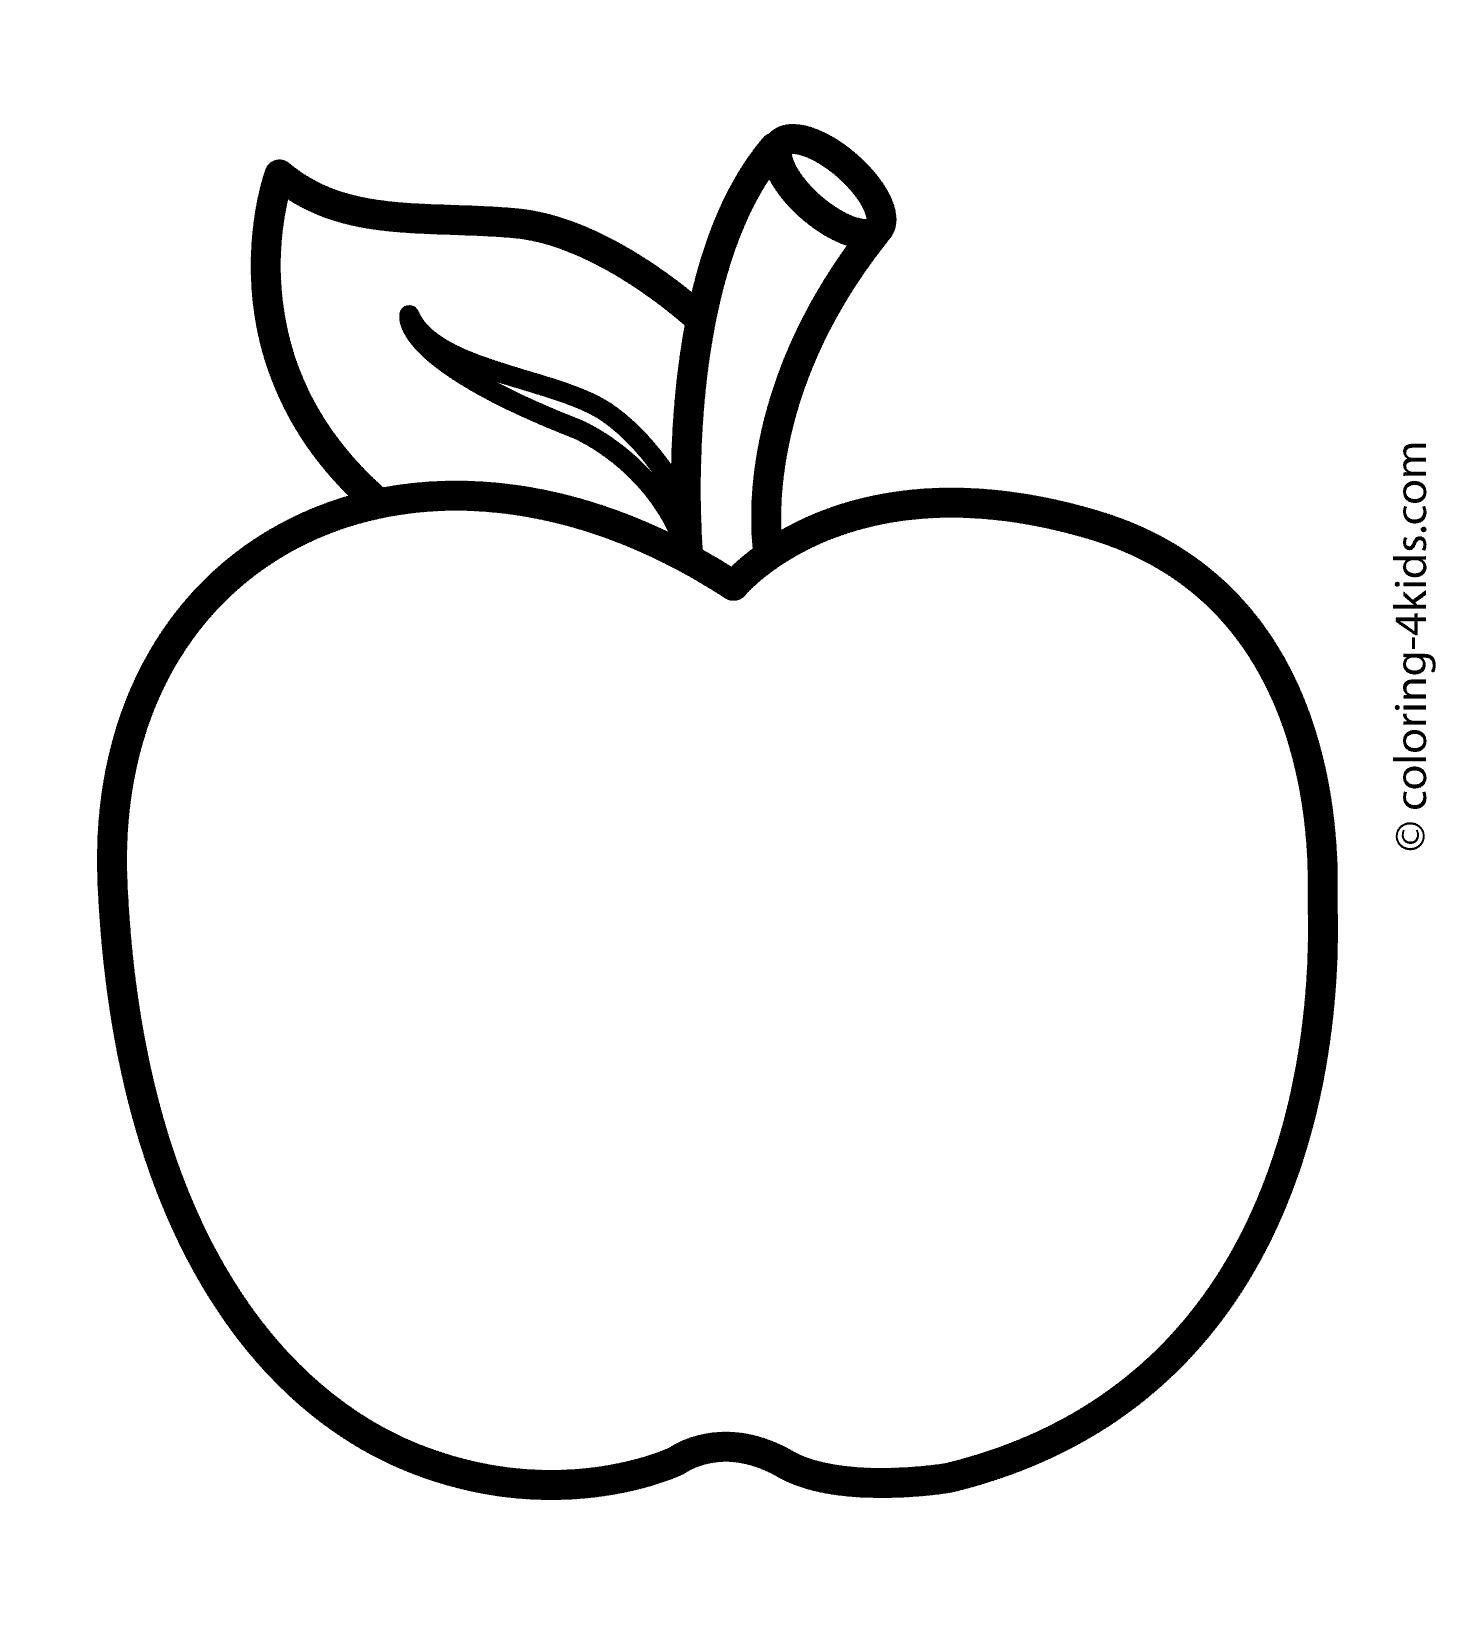 Fotolip Com Rich Image And: Apple Coloring Pages Free Large Images